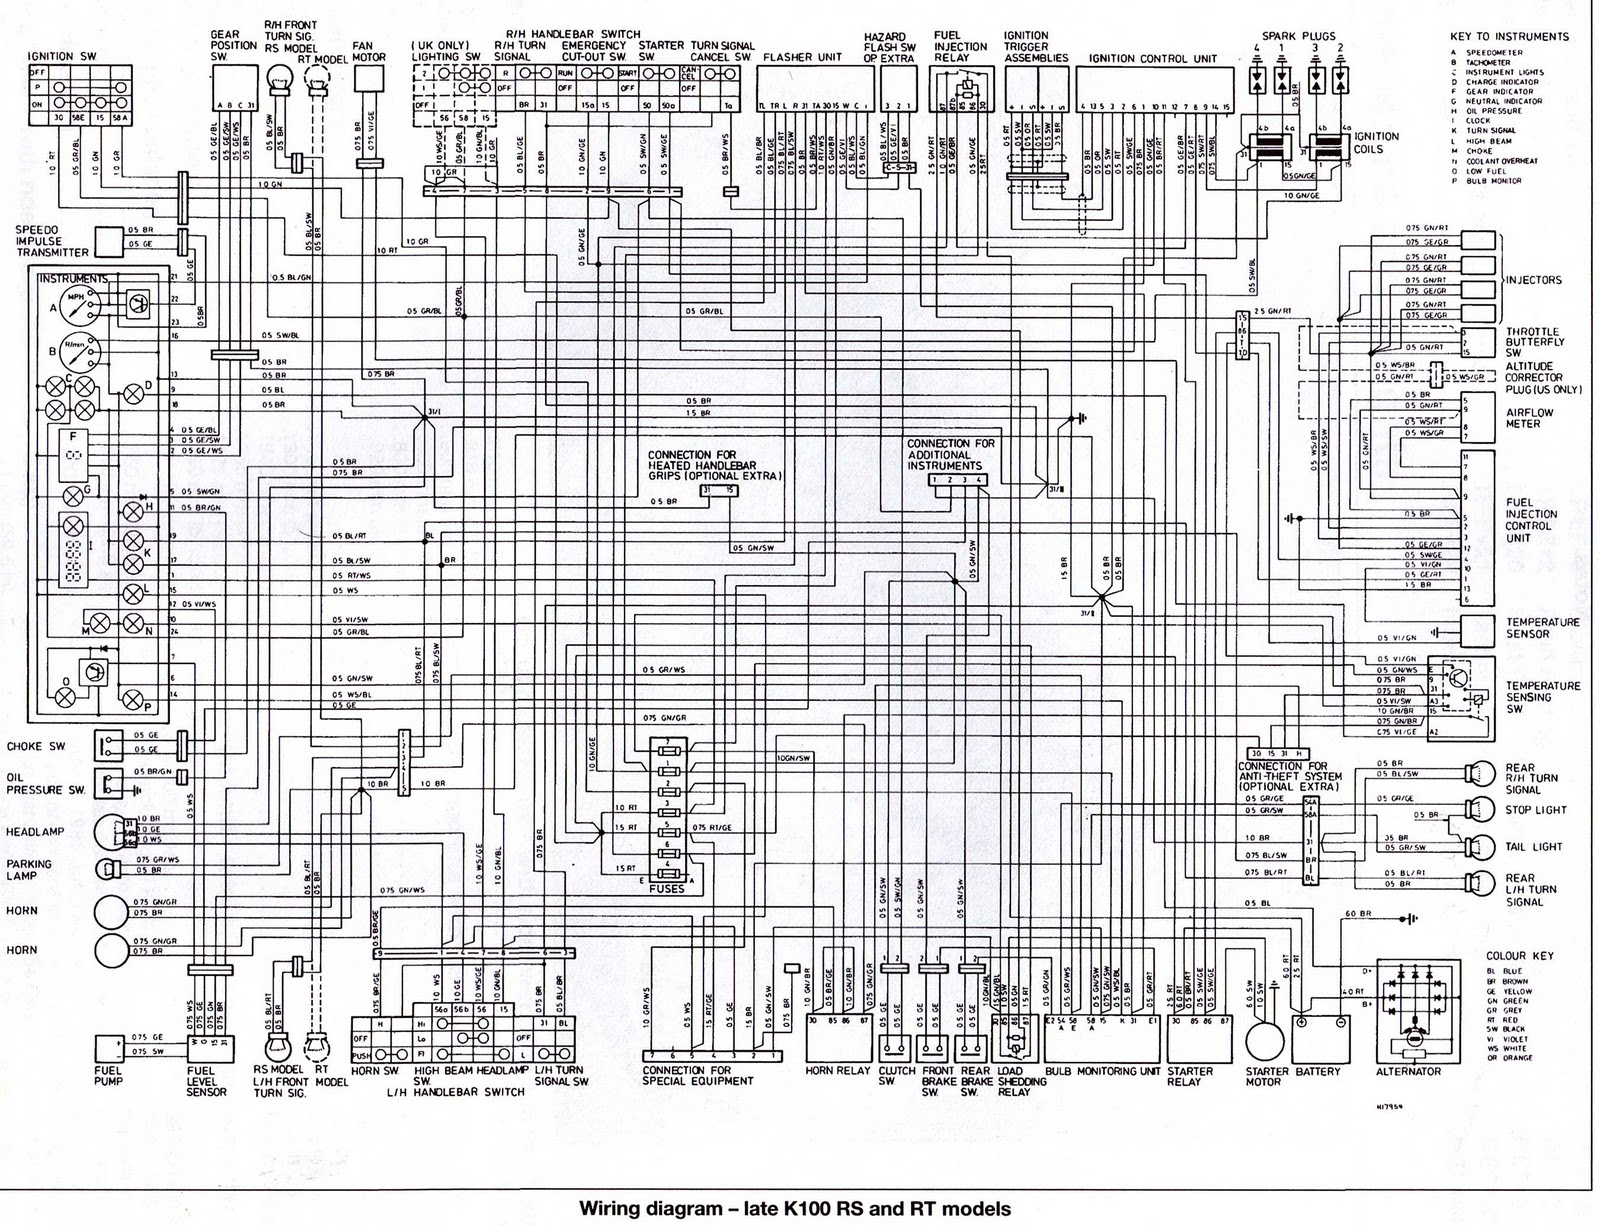 BMW+KR100RS RT+Wiring+Diagram bmw wiring diagram bmw r100rs gauge wiring diagram at honlapkeszites.co